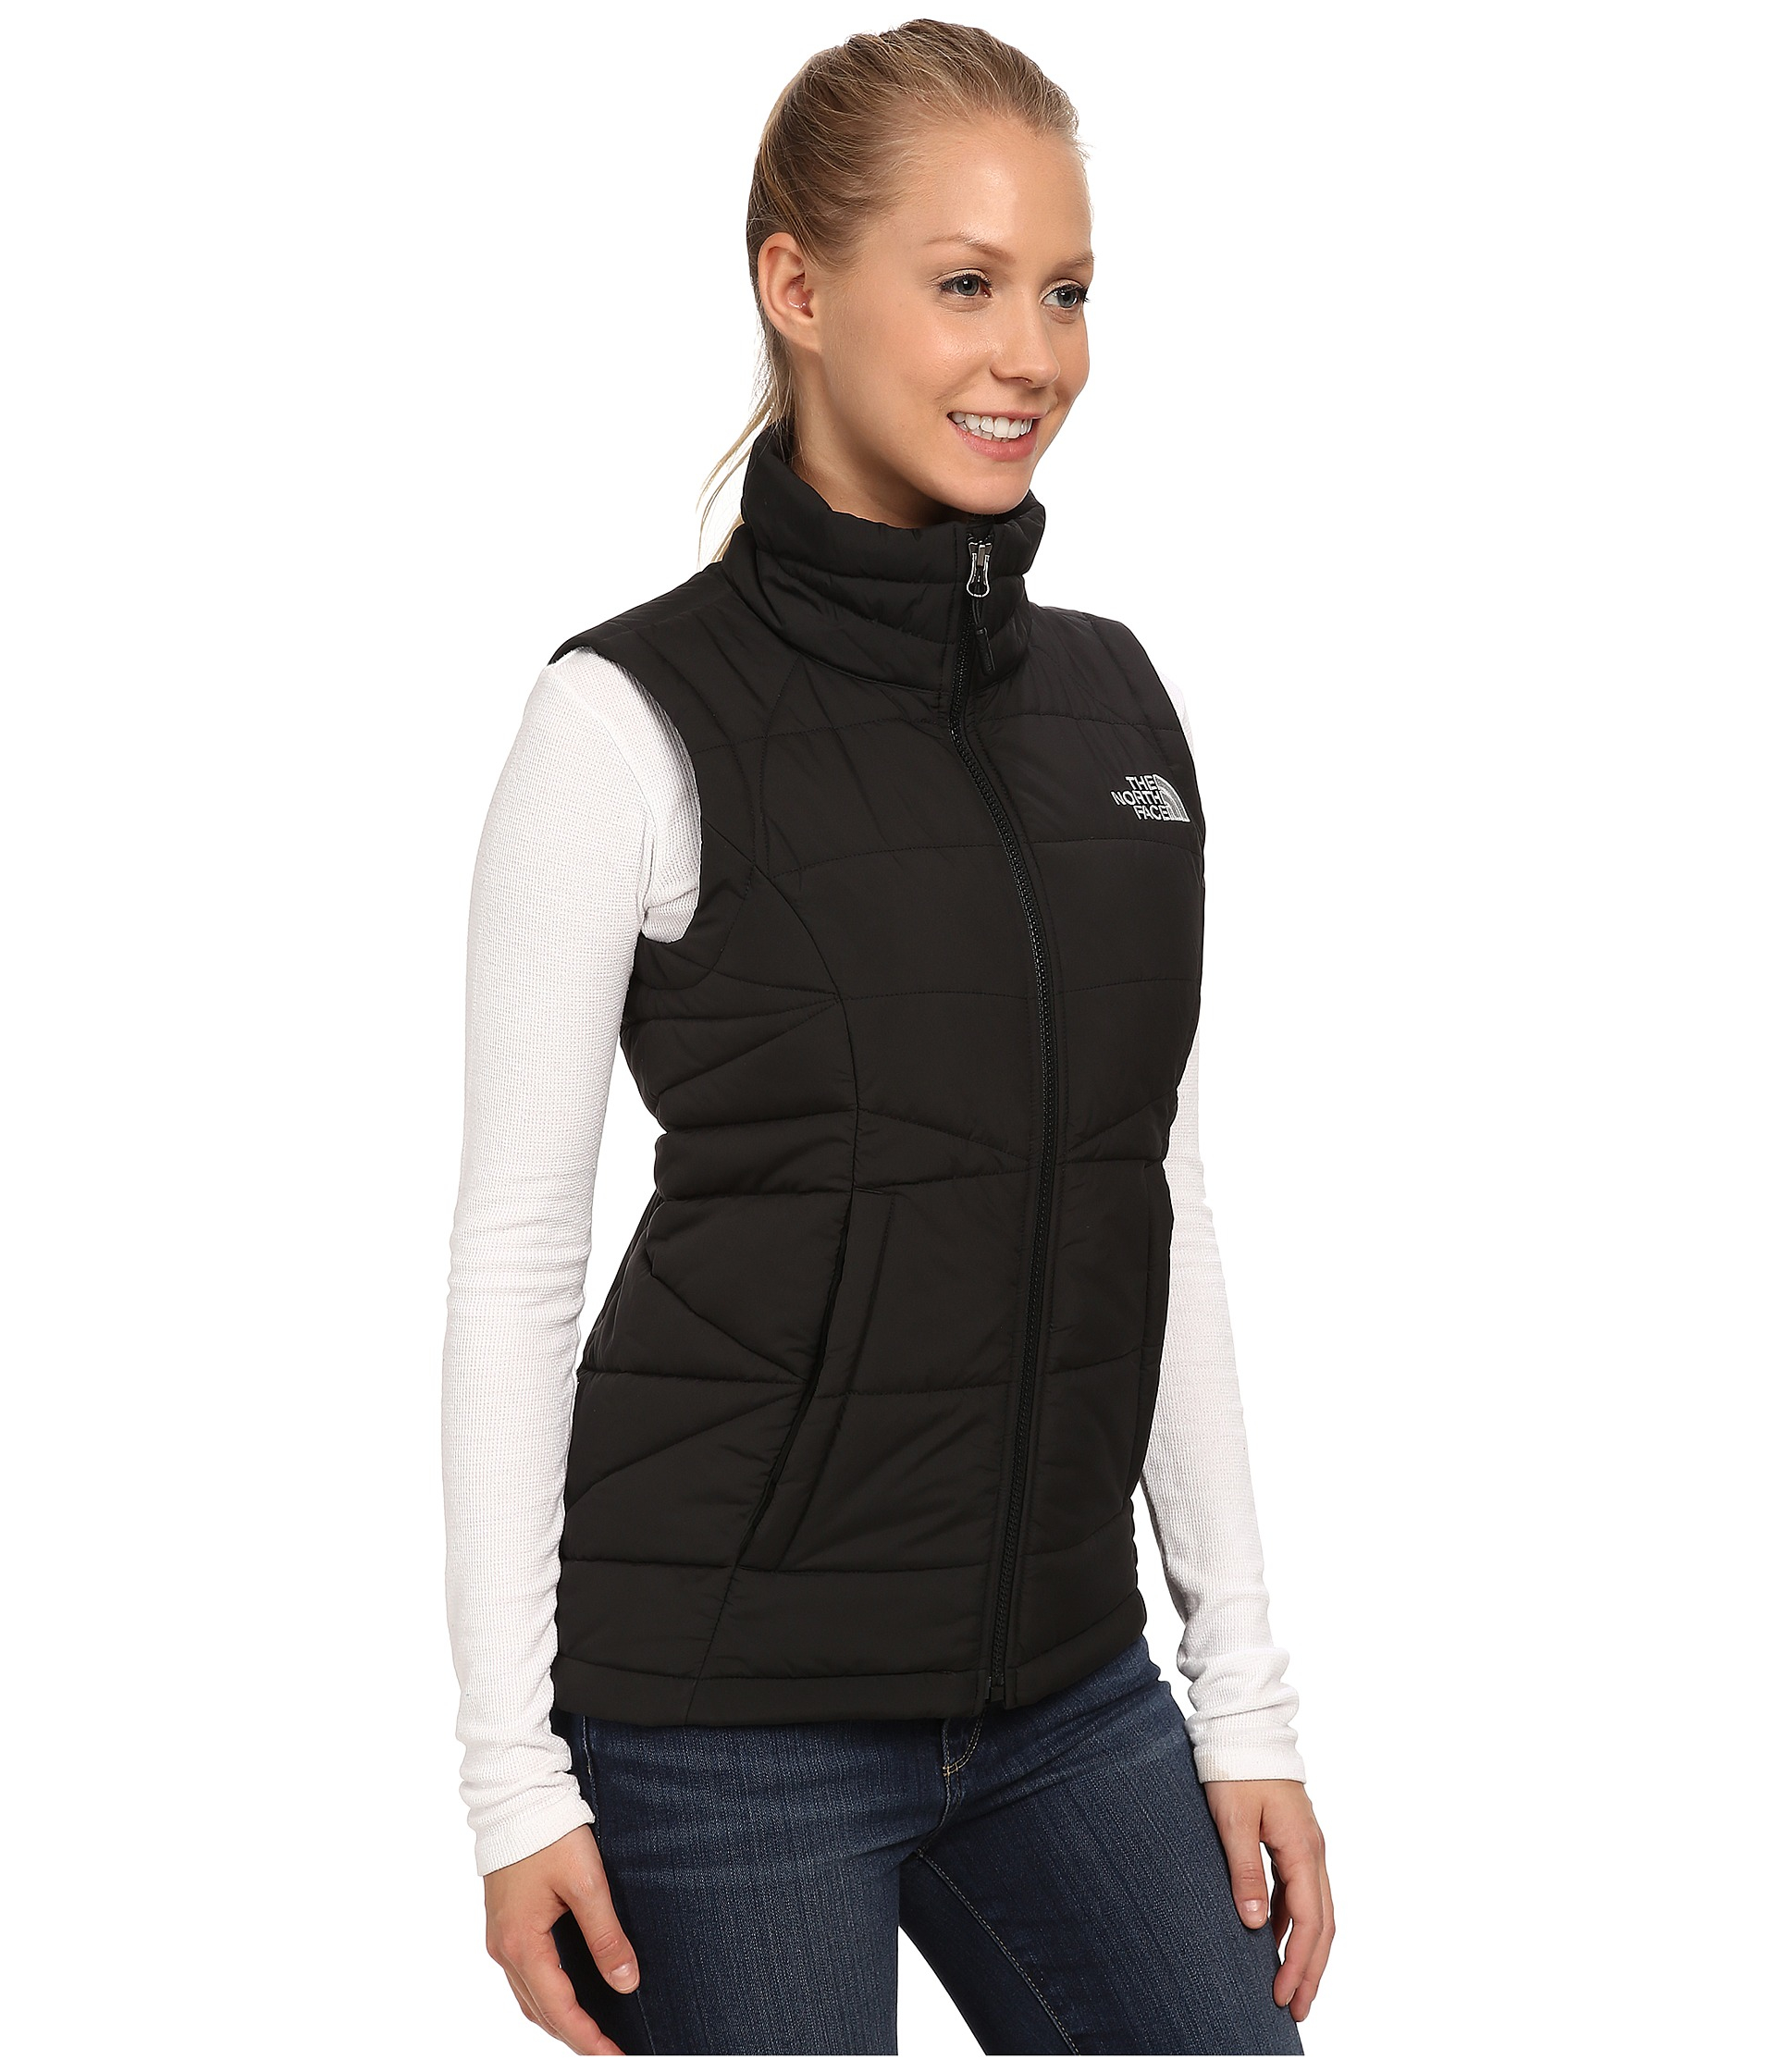 39409a3264d22 The North Face Roamer Vest in Black - Lyst